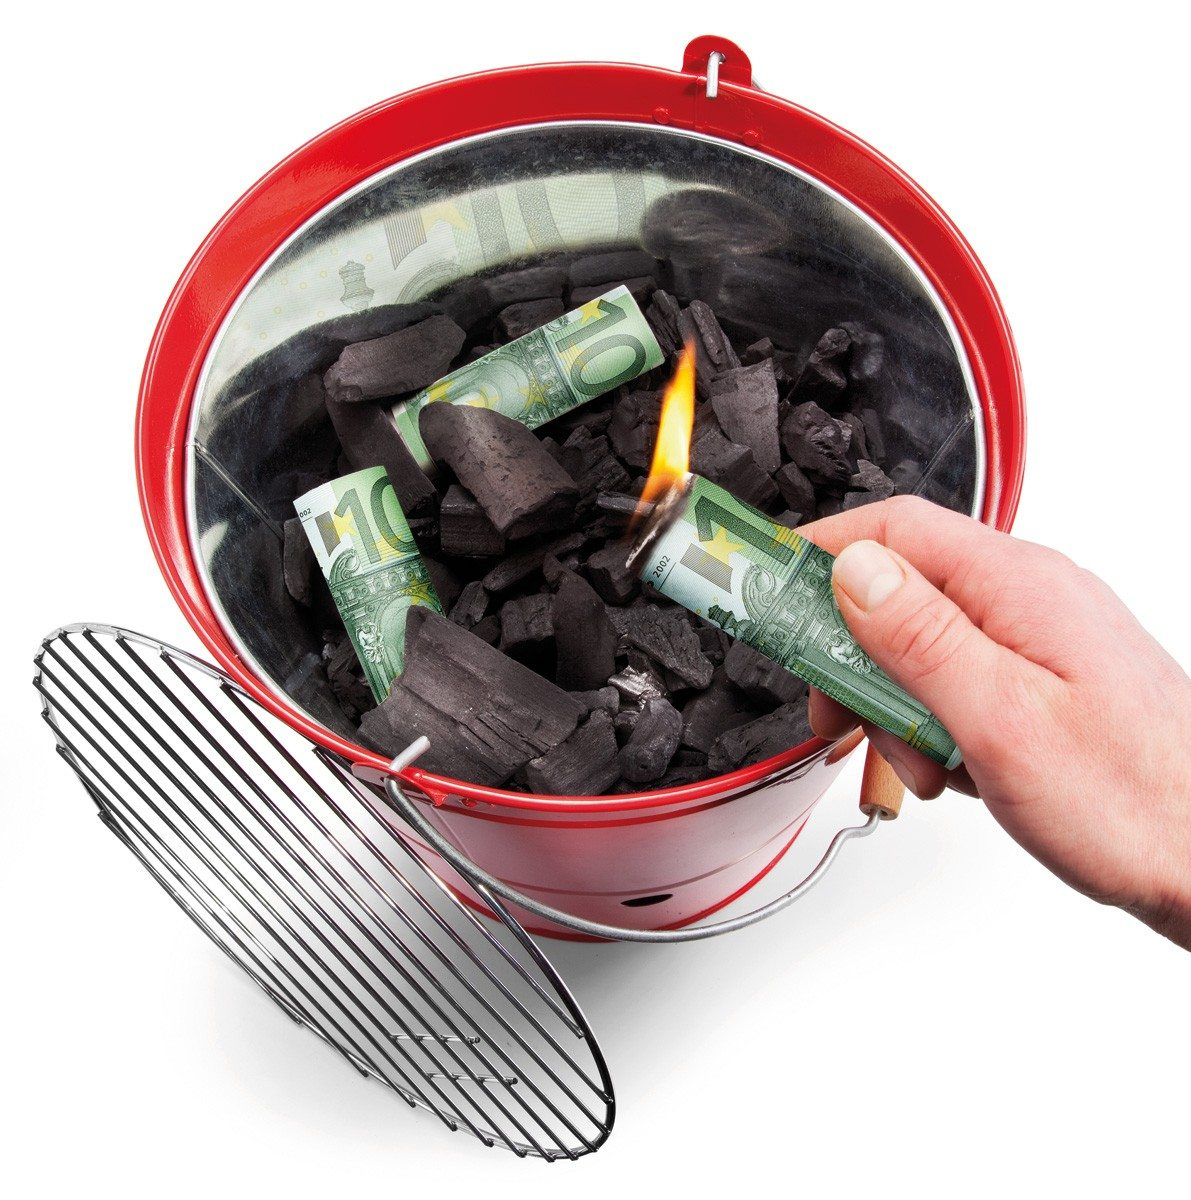 Burn your money - BBQ briquet